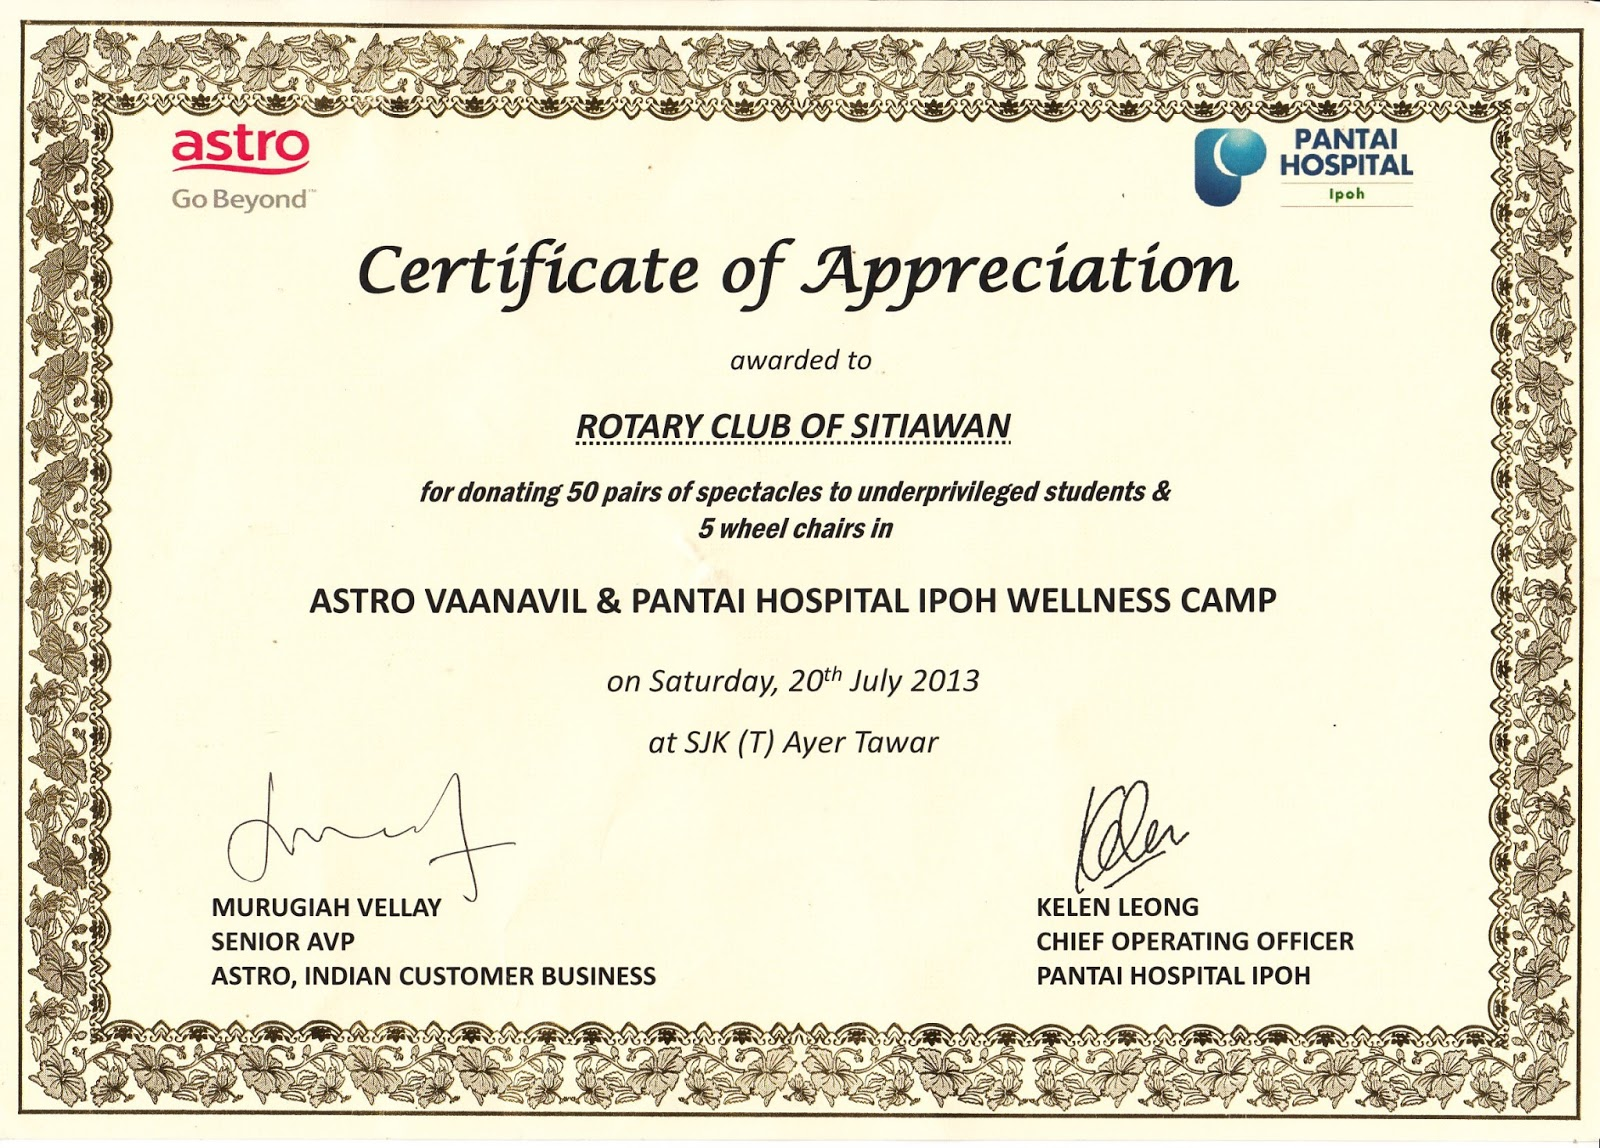 Rotary club of sitiawan chartered on 2013 for Rotary certificate of appreciation template